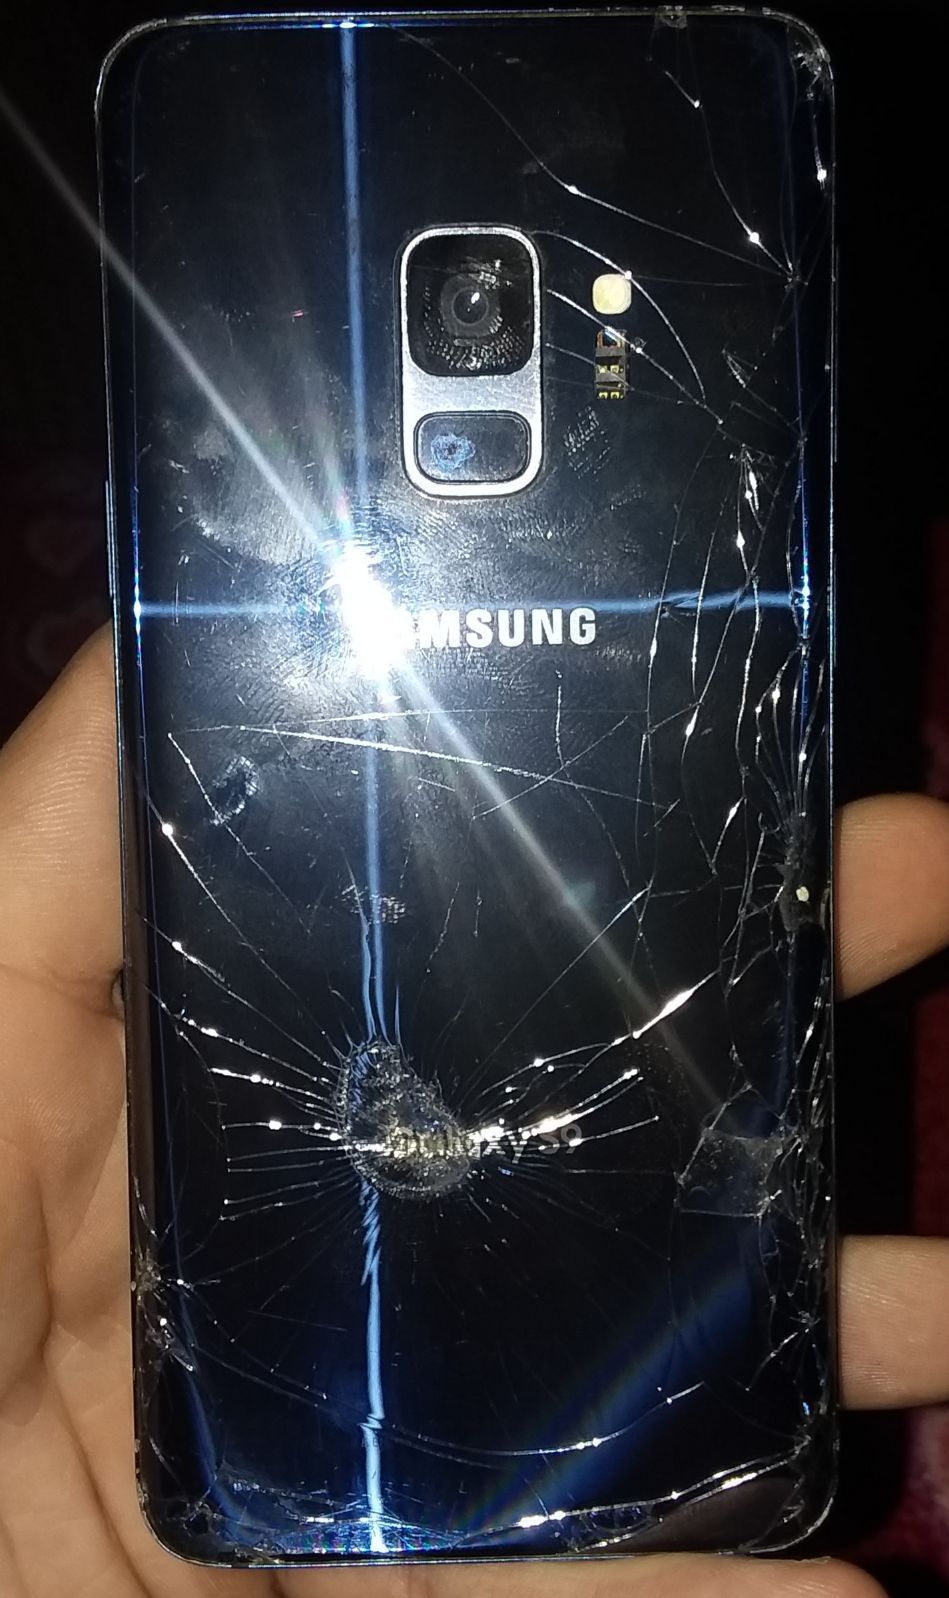 Wont turn on. Could be fixed. Galaxy phone